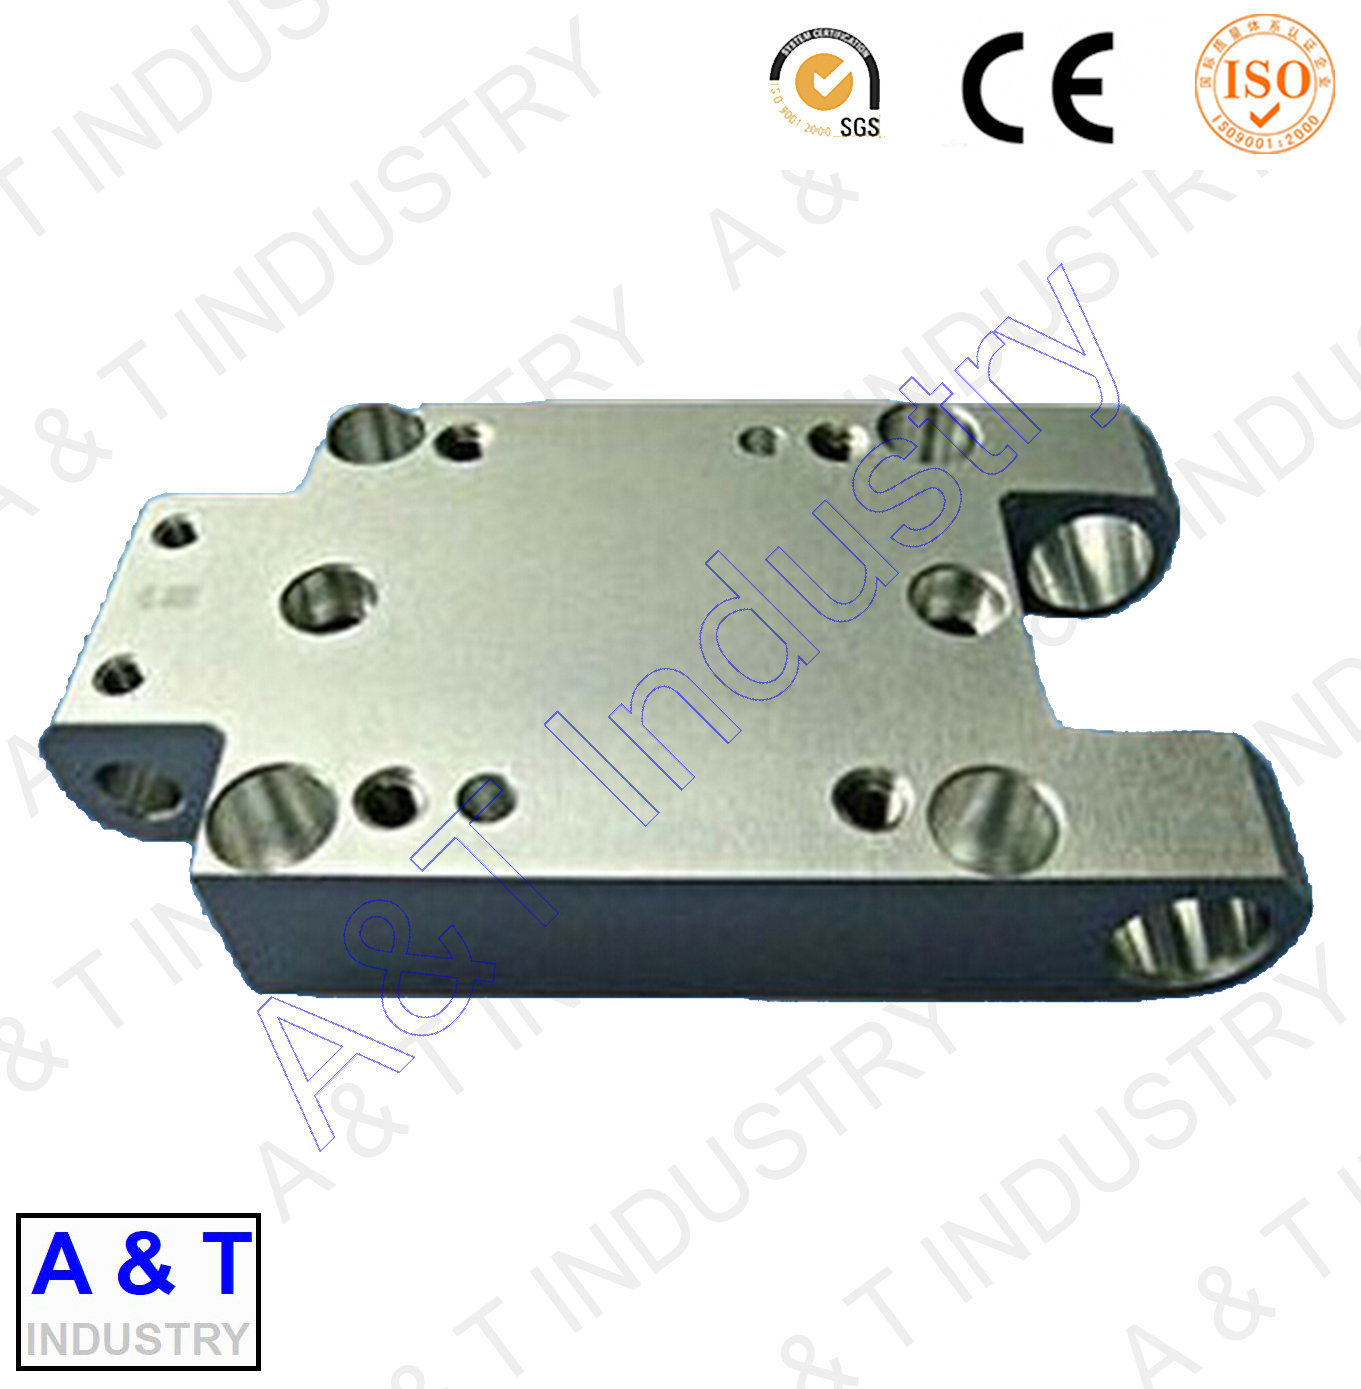 CNC Customized Aluminum/Stainless Steel/Brass/ Turning Part, Auto Parts with High Quality